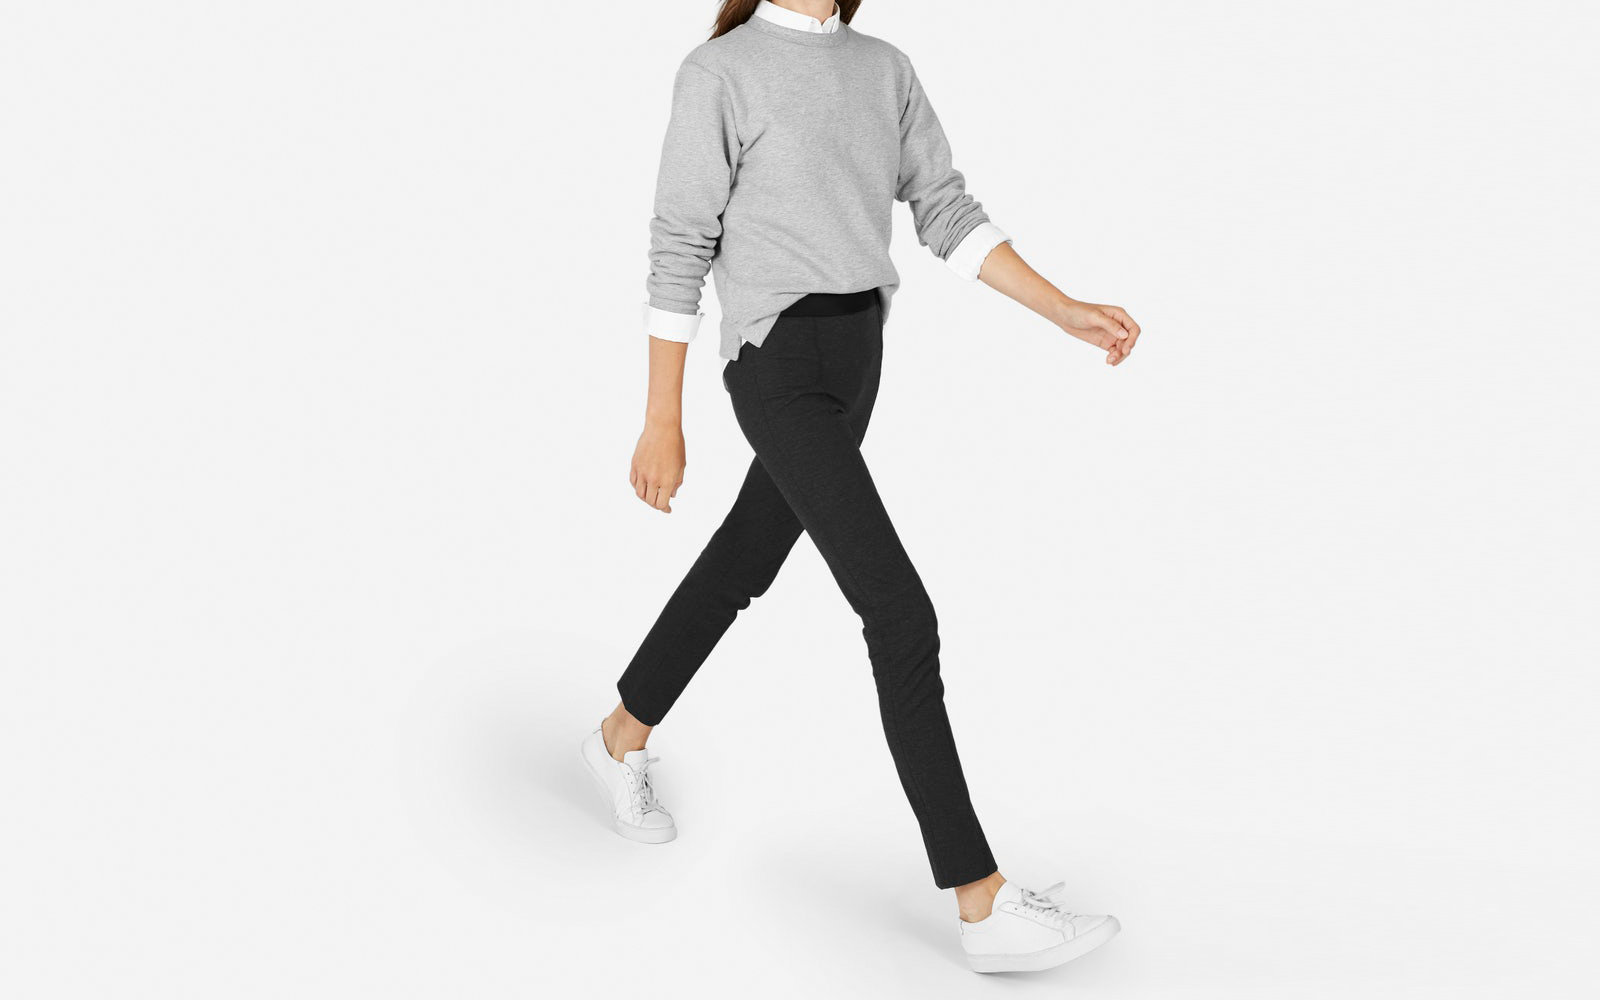 Everlane stretch pant